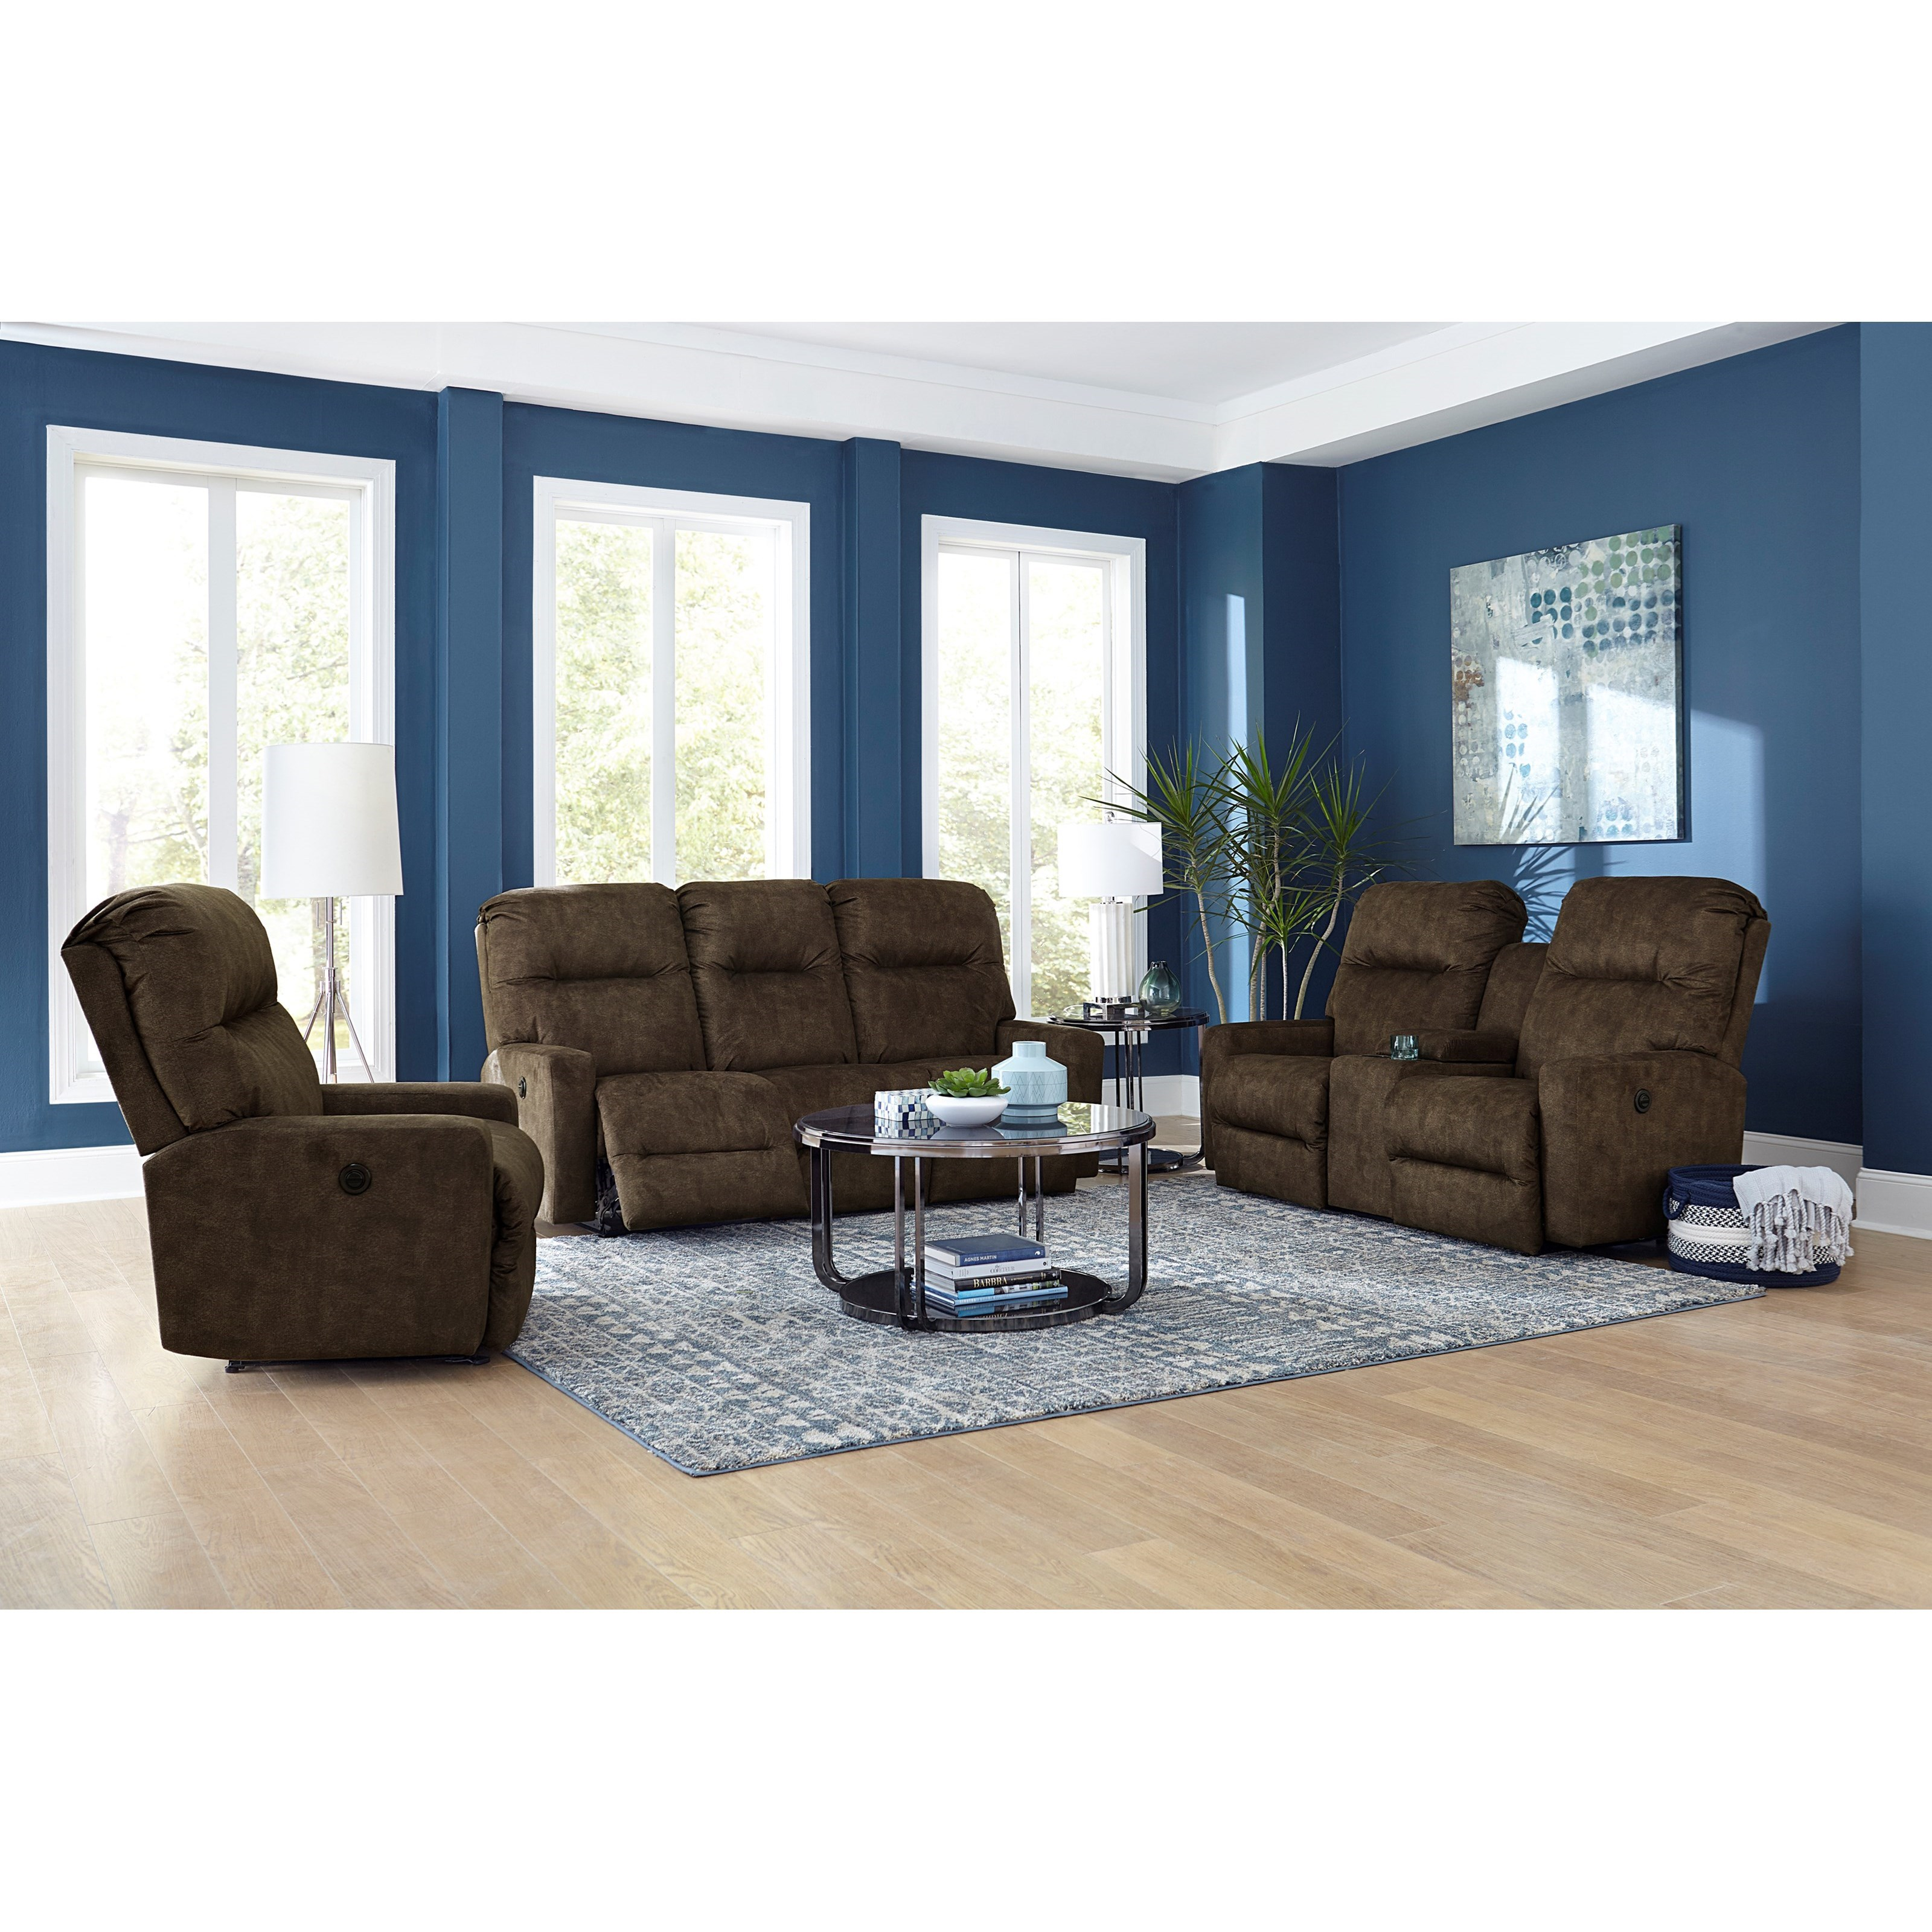 Kenley Power Reclining Living Room Group by Best Home Furnishings at Baer's Furniture